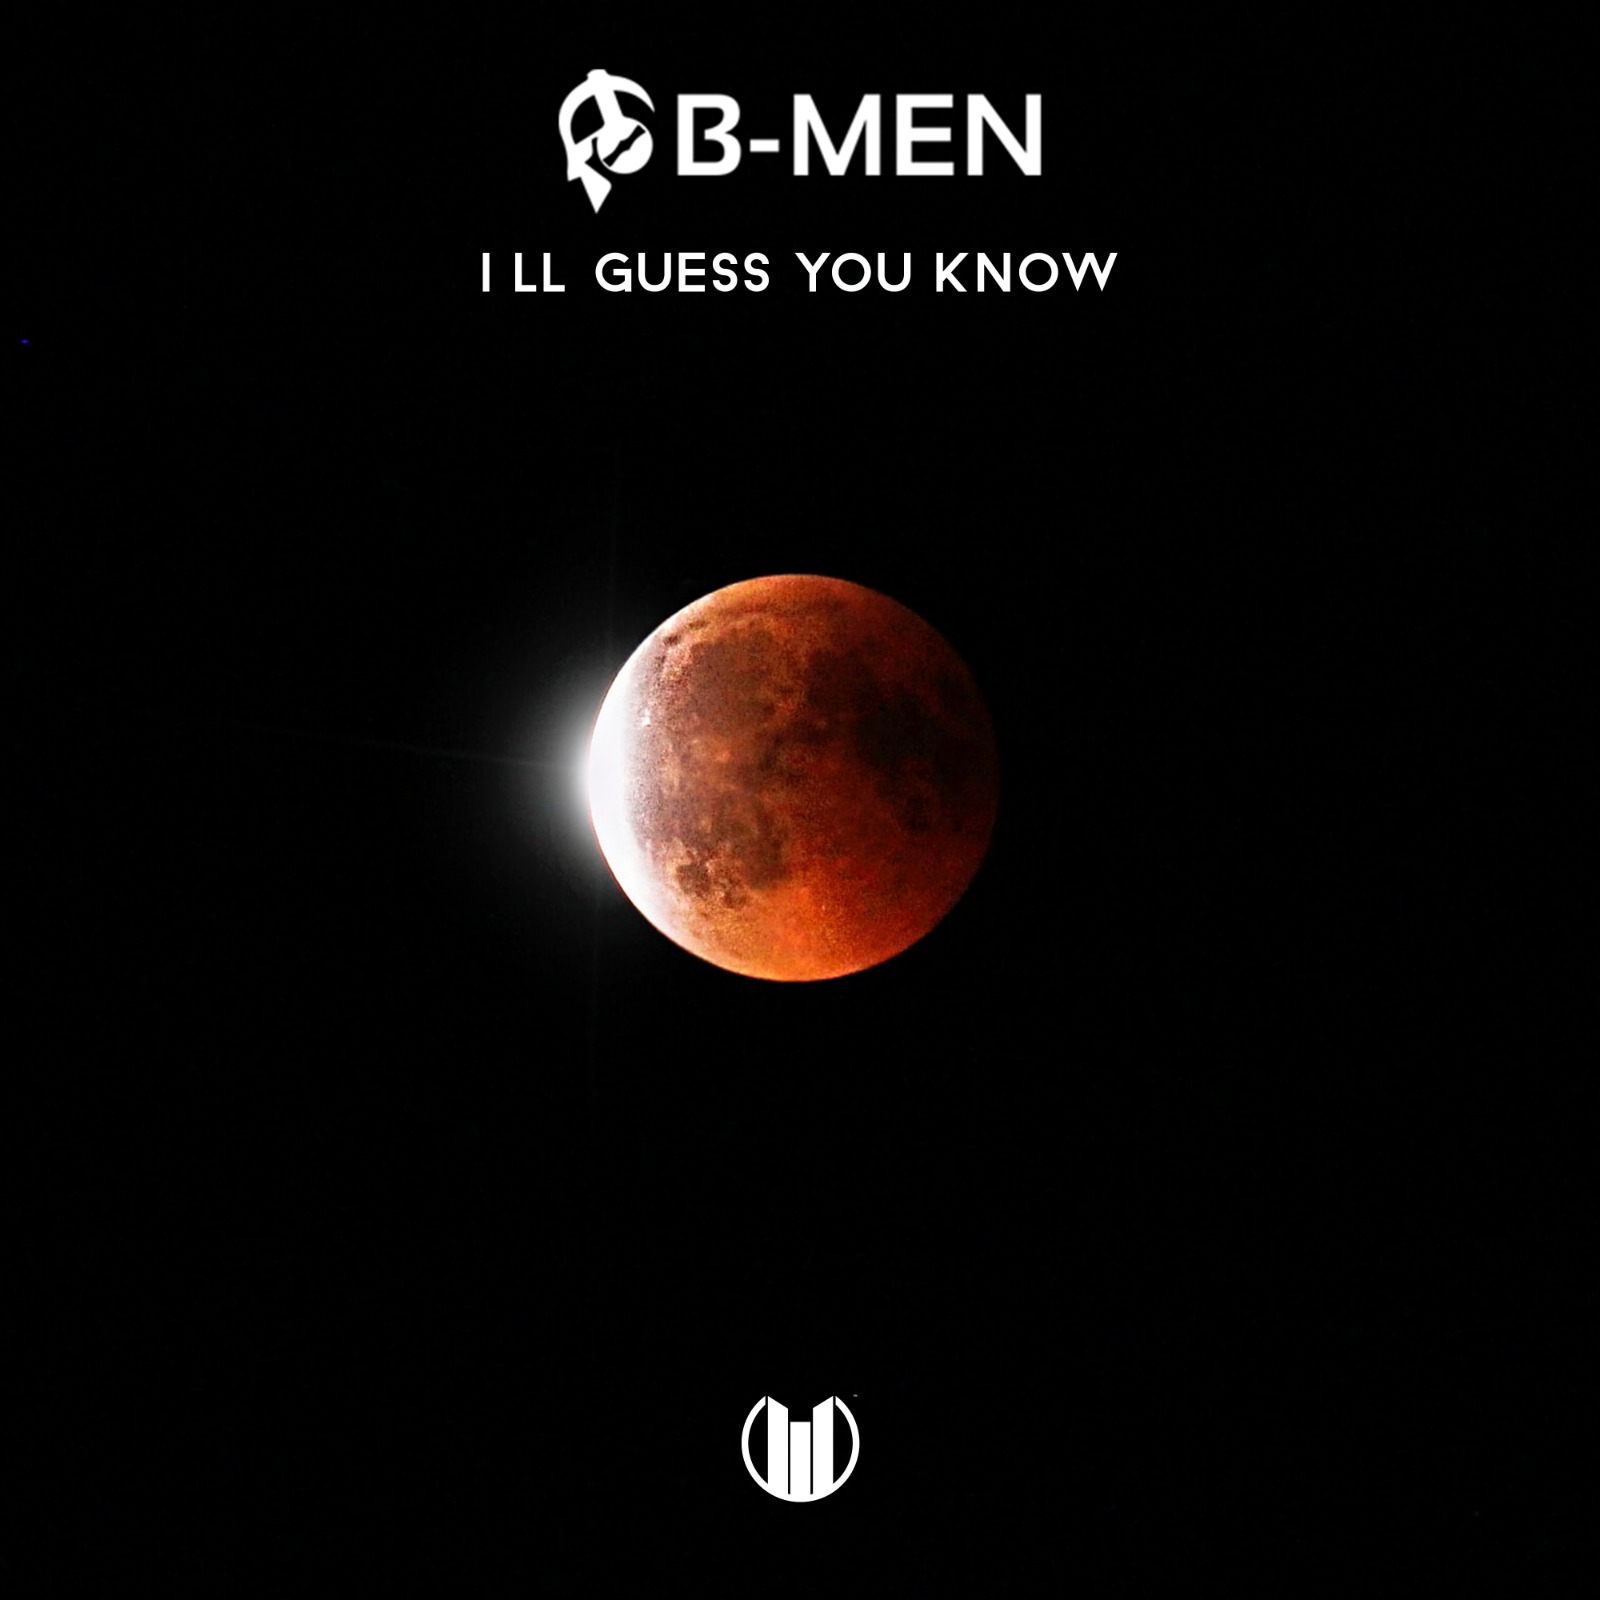 BMEN Guess You Know New Release - B-MEN I'll Guess You Know